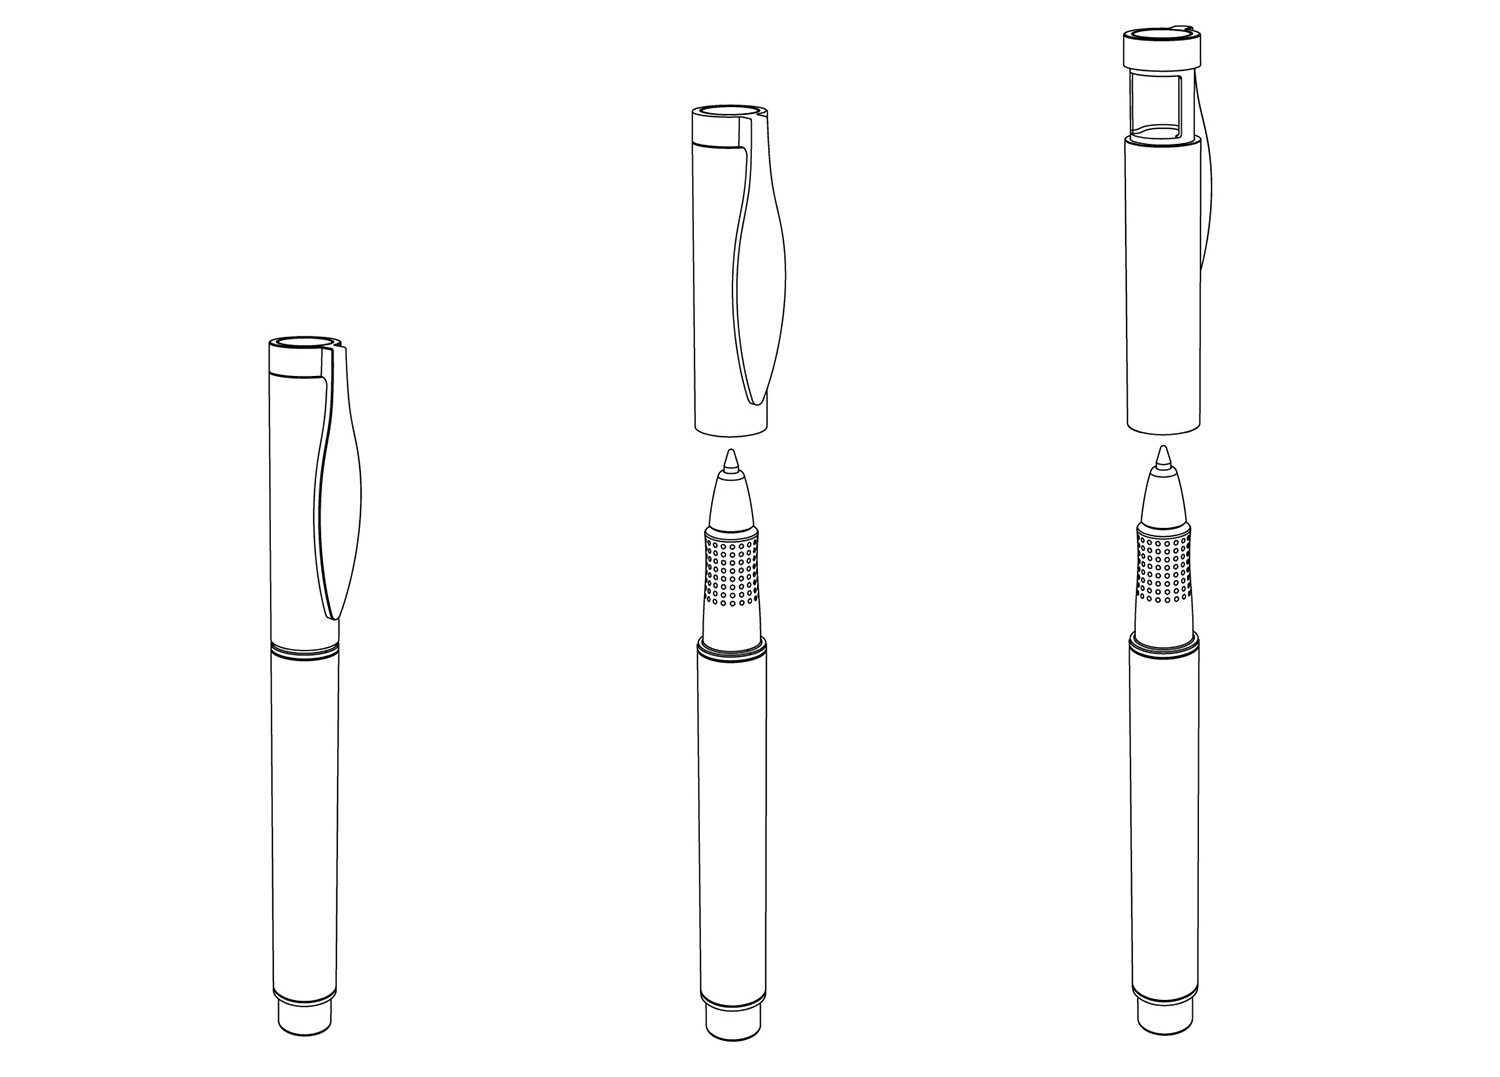 Steppen Biopen Biodegradable Pen Design